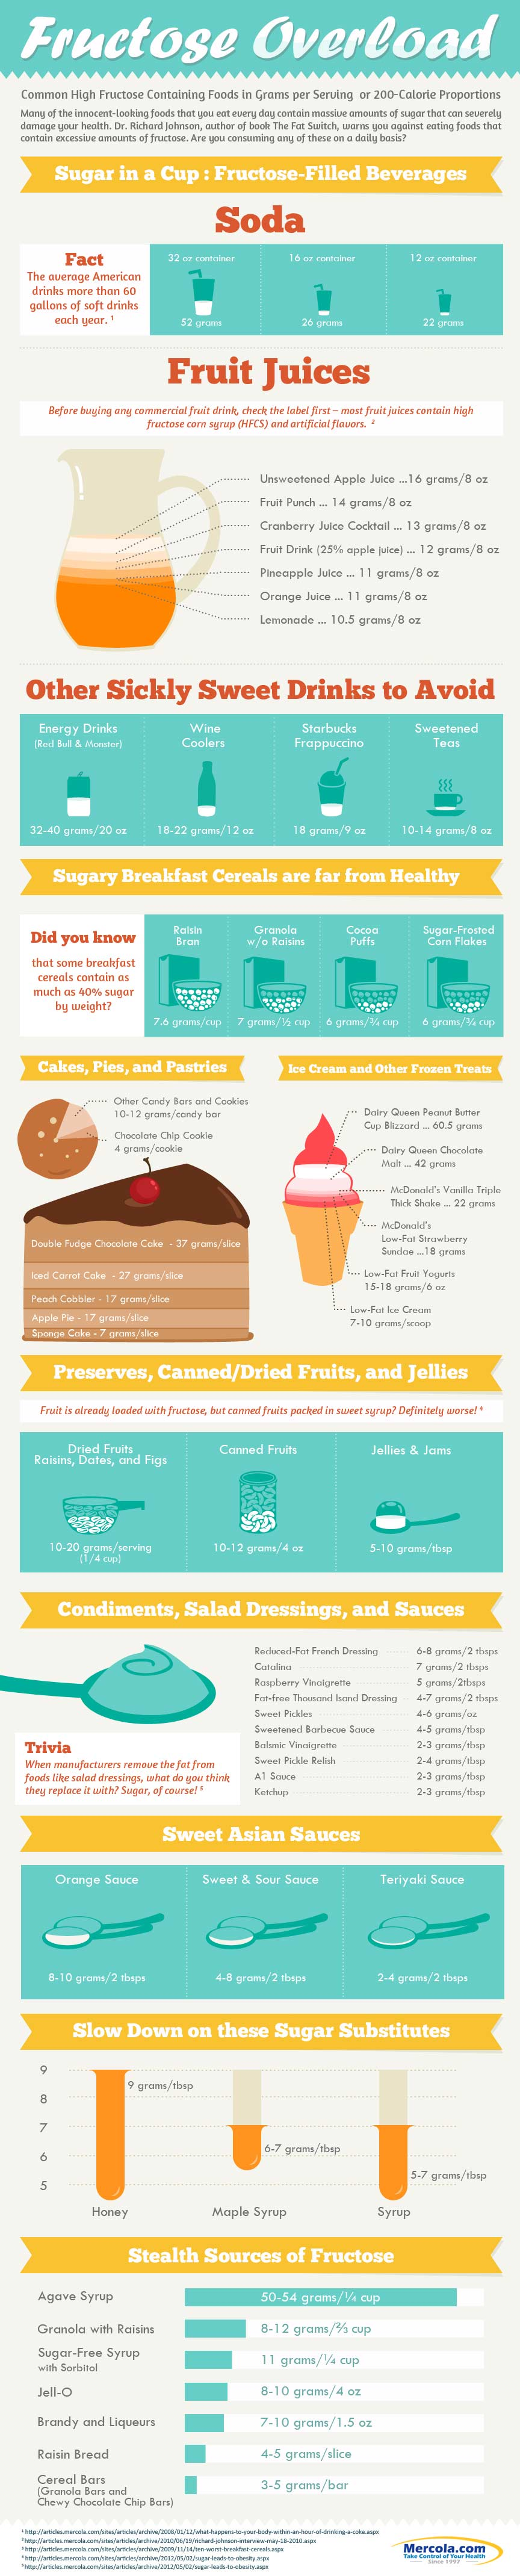 to much sugar infographic